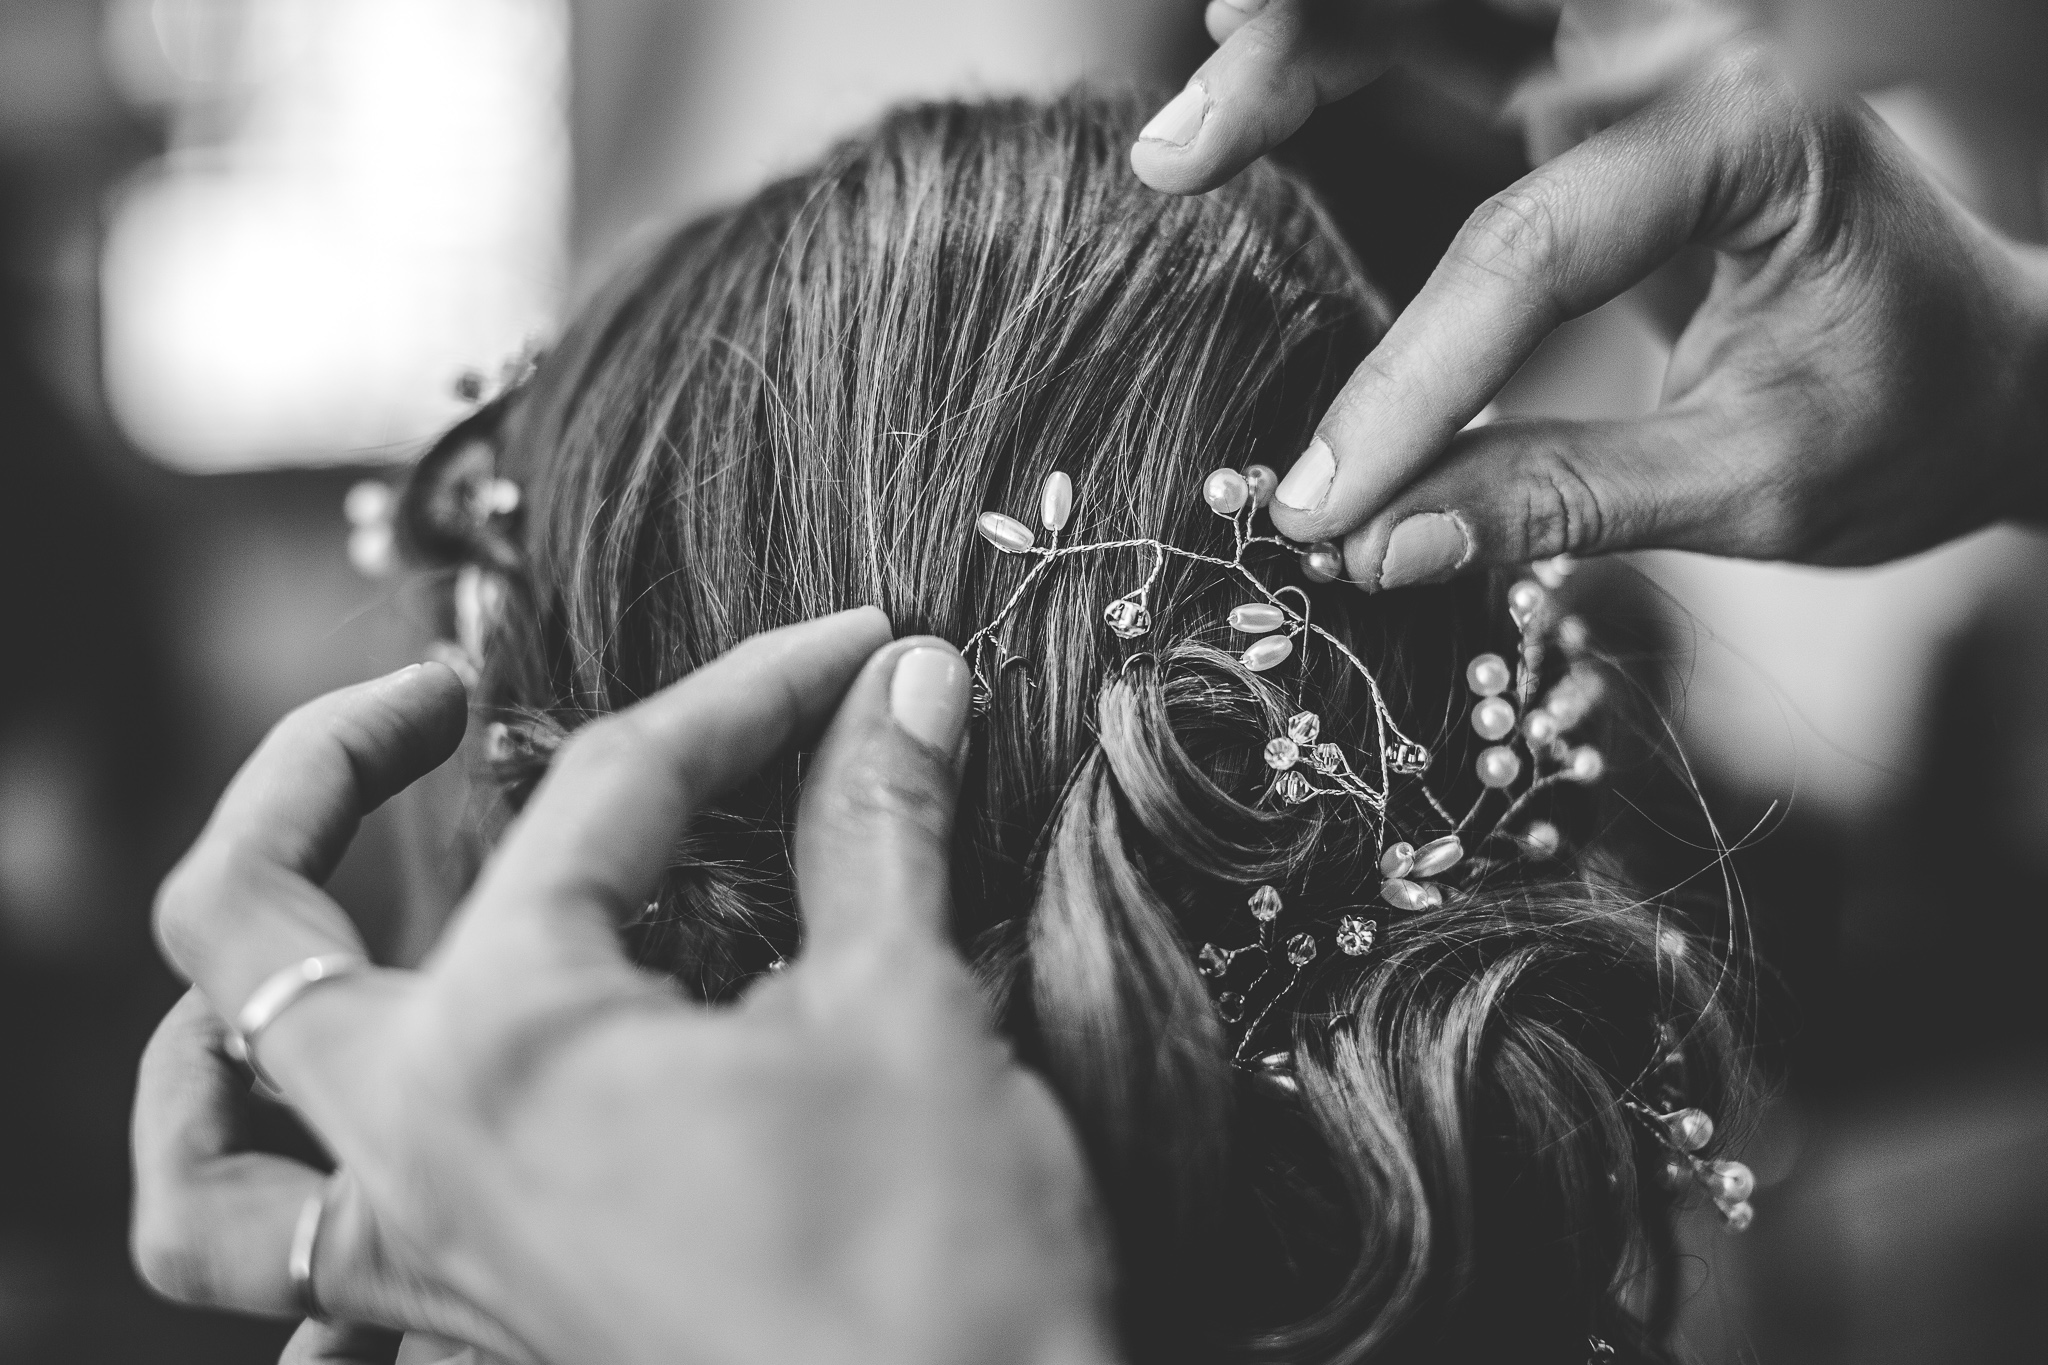 reportage mariage photo habillage preparatifs la mariee coiffure maquillage toulouse